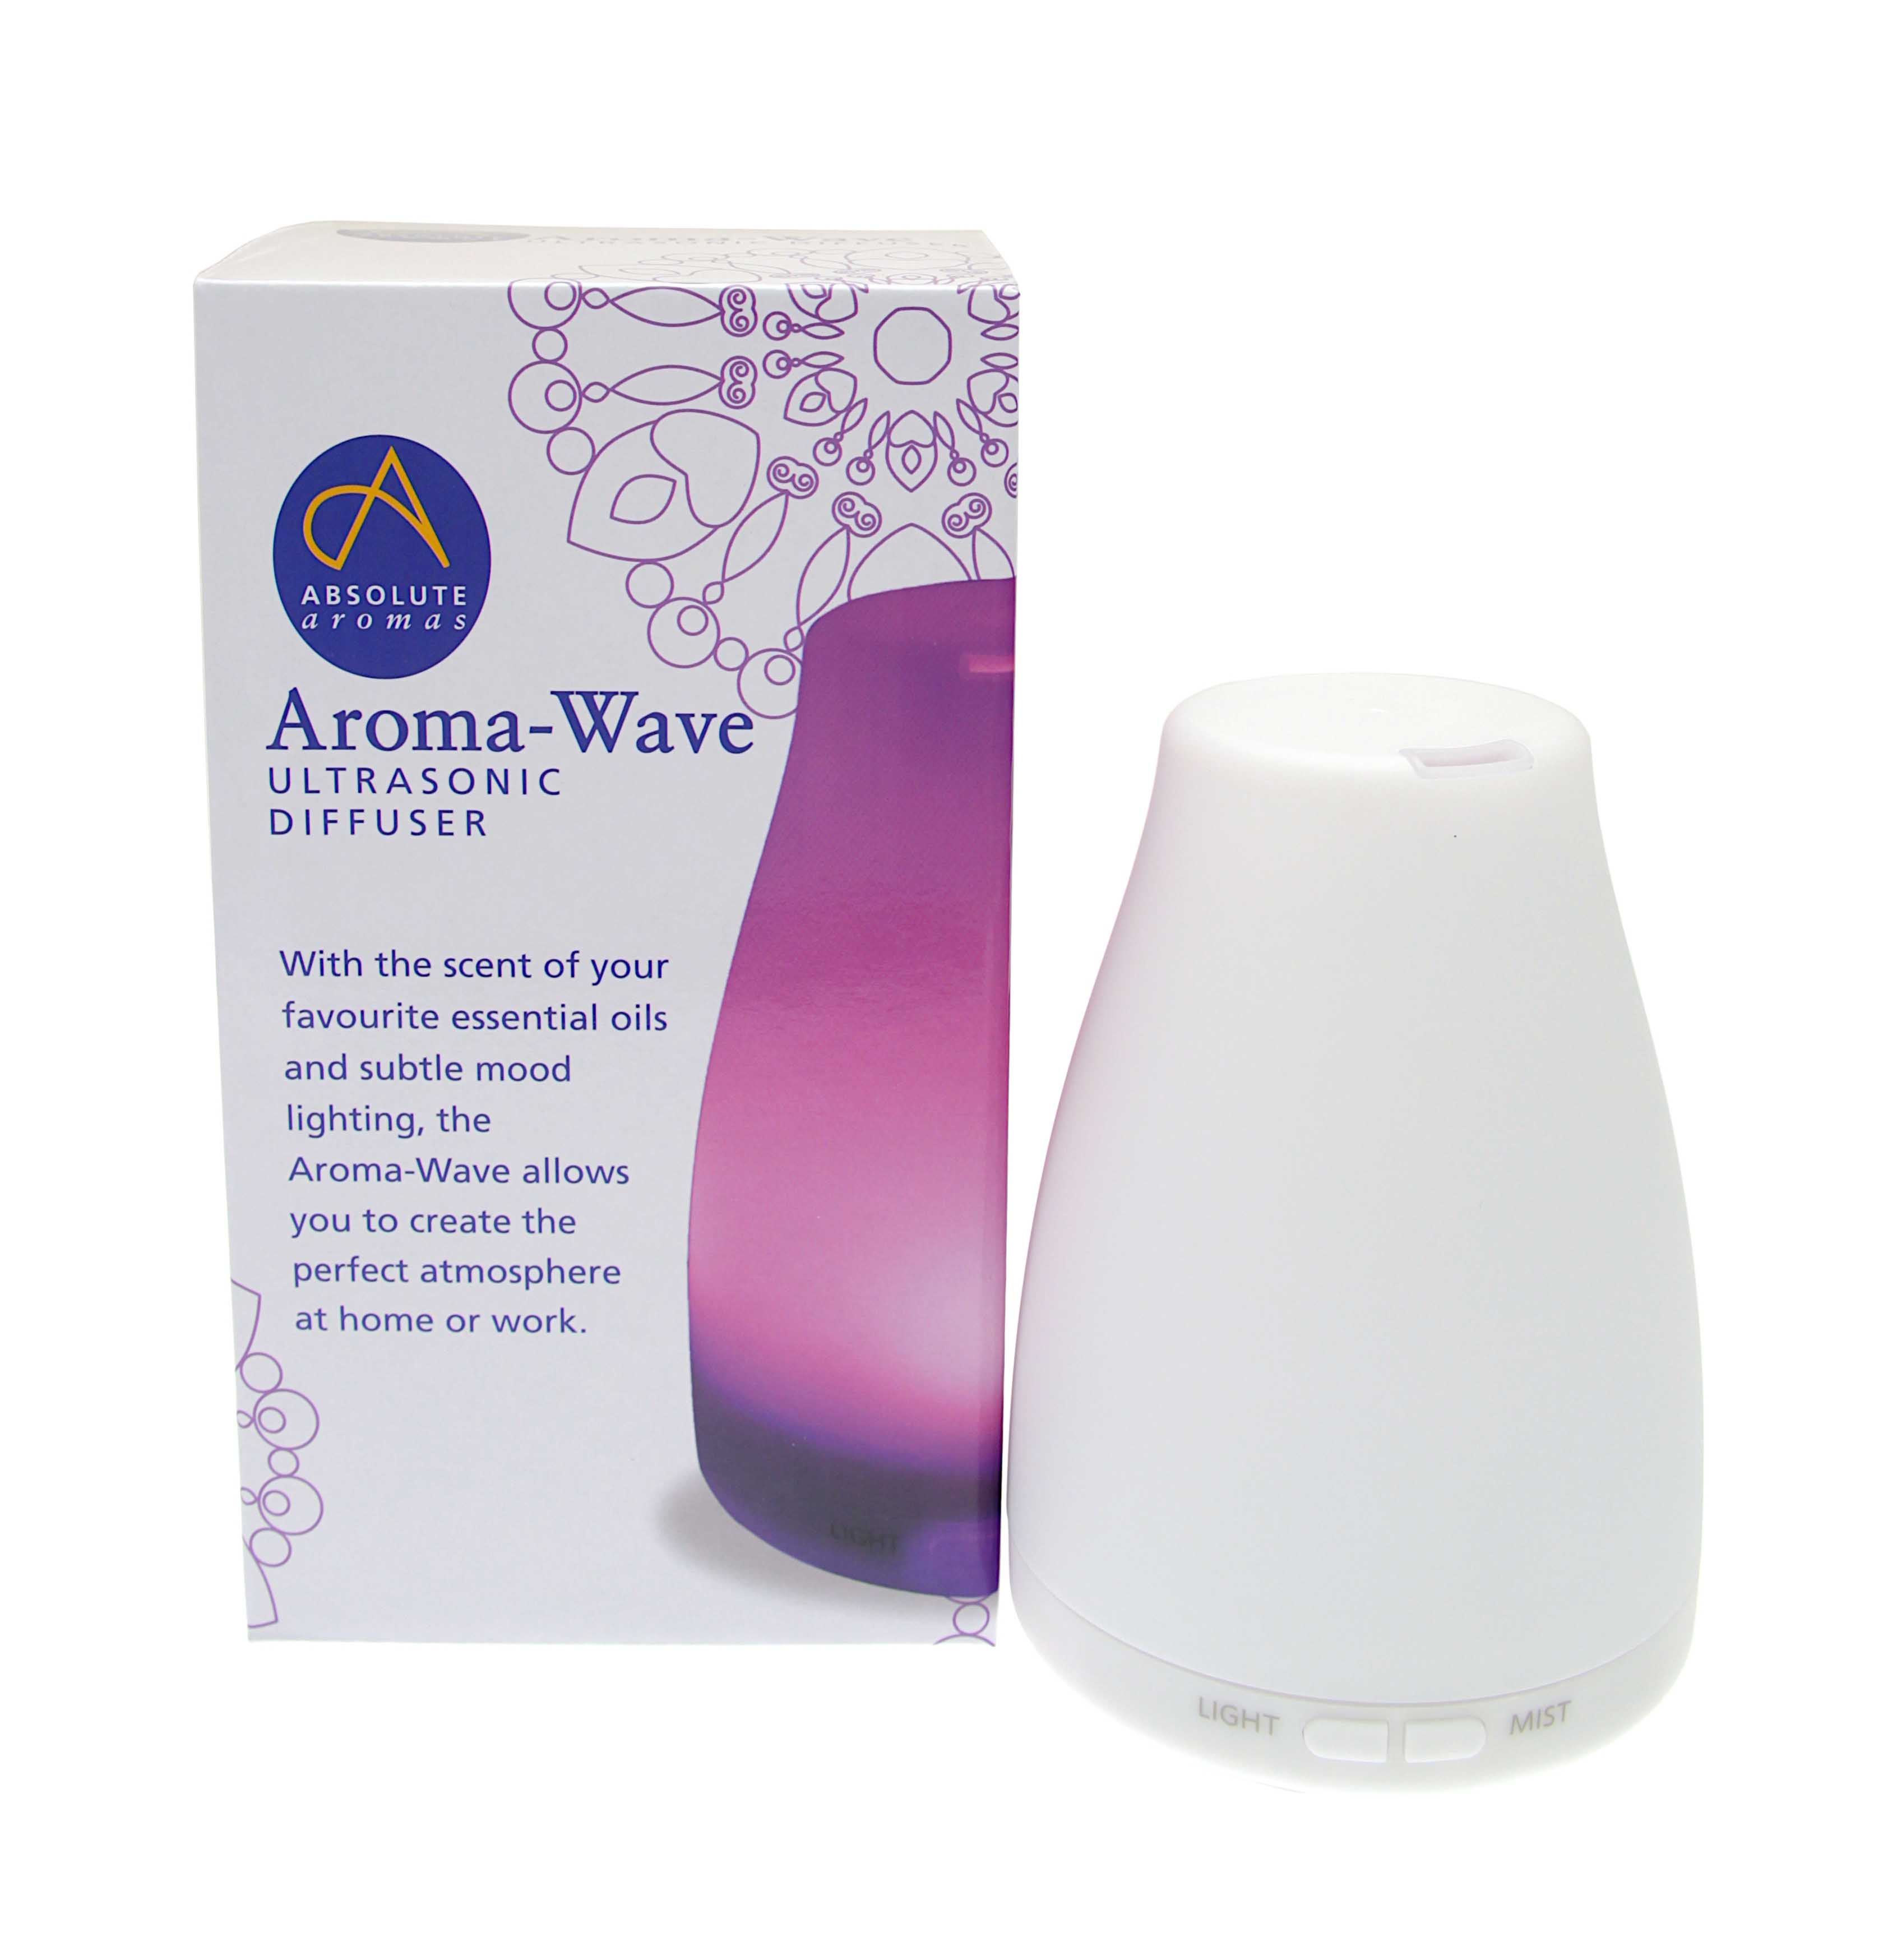 Aroma-Wave-and-Box